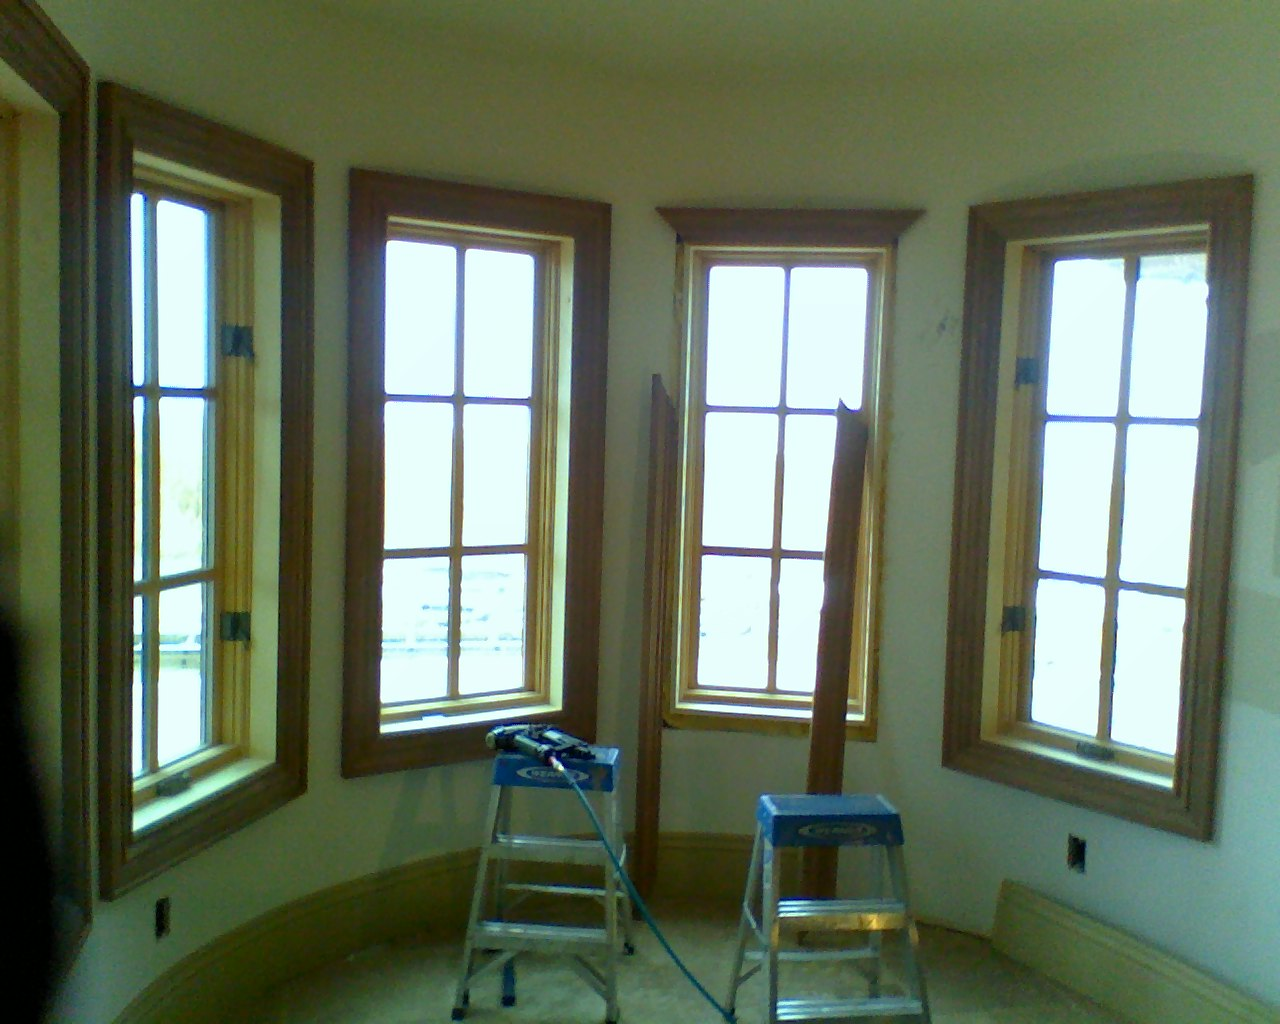 Current Interior Trim Job Carpentry Picture Post Contractor Talk